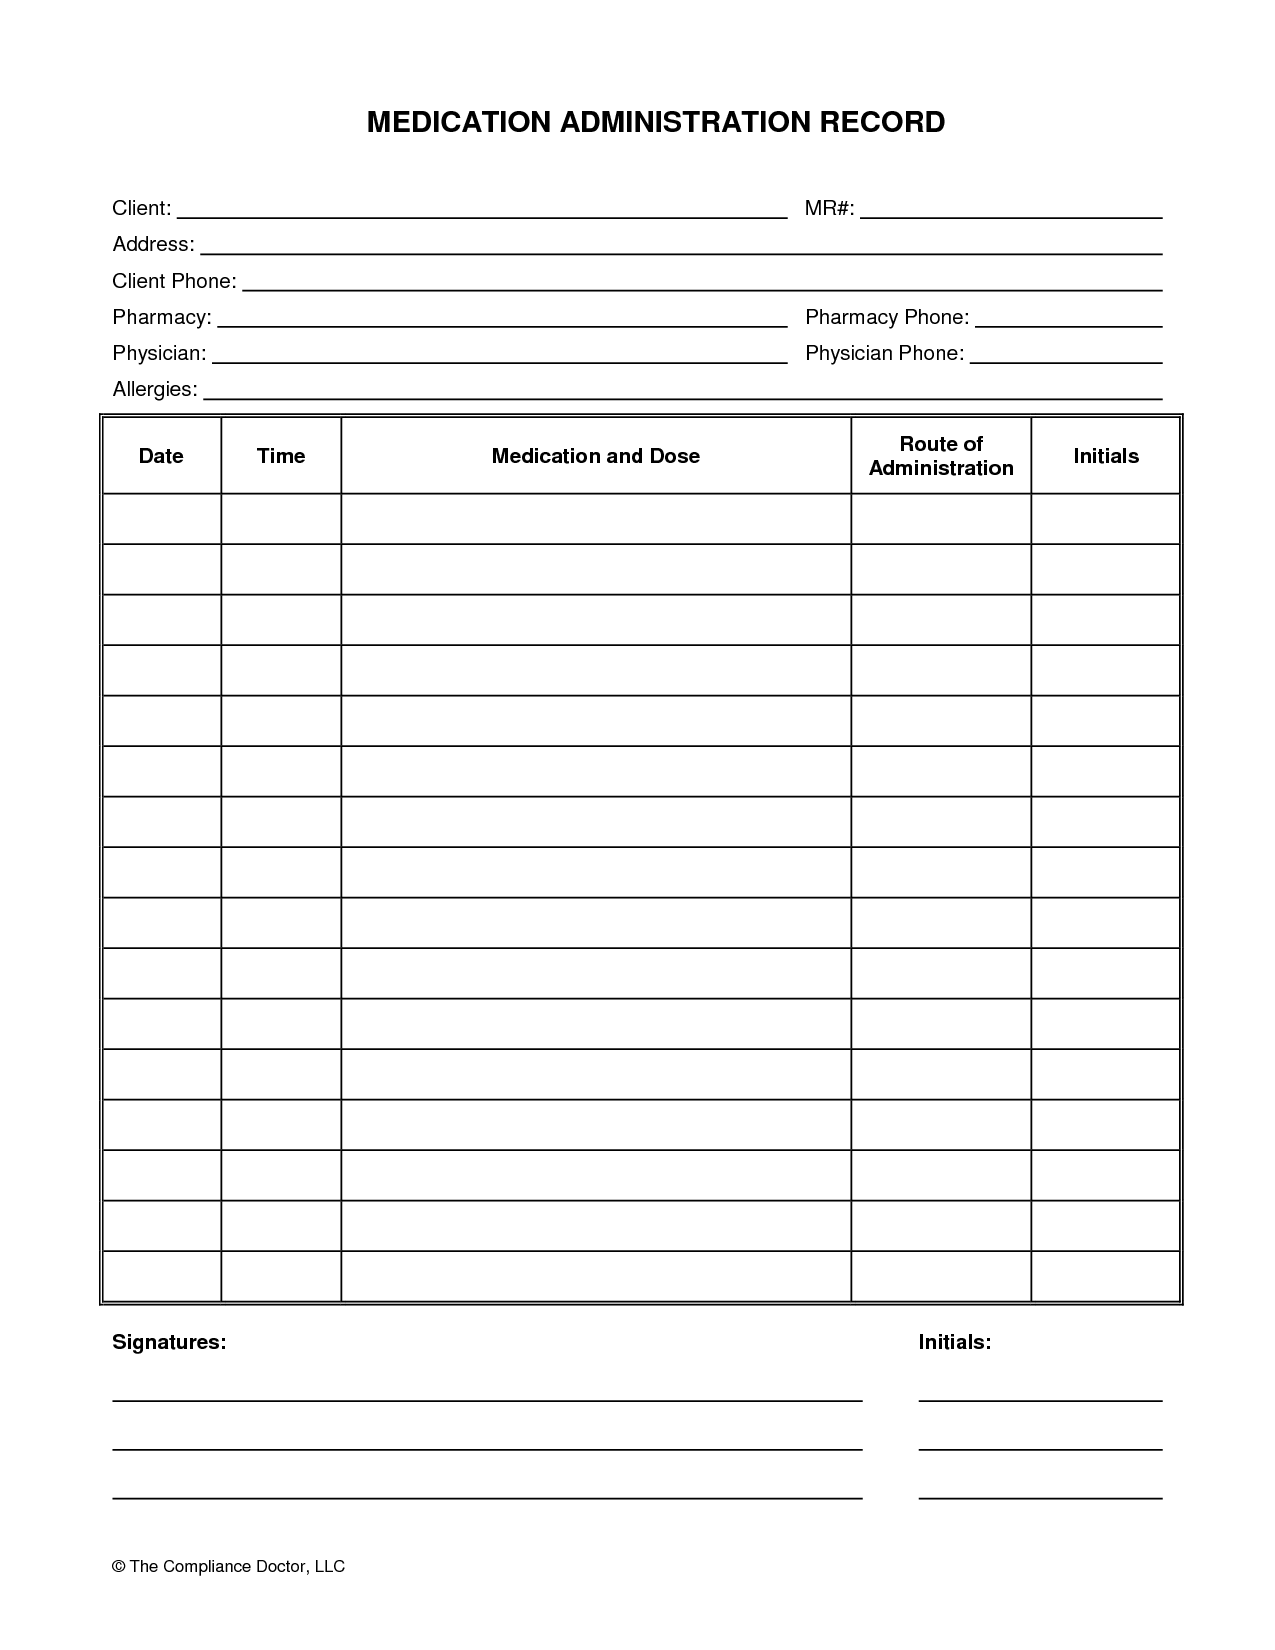 Medication Administration Record Form With Images